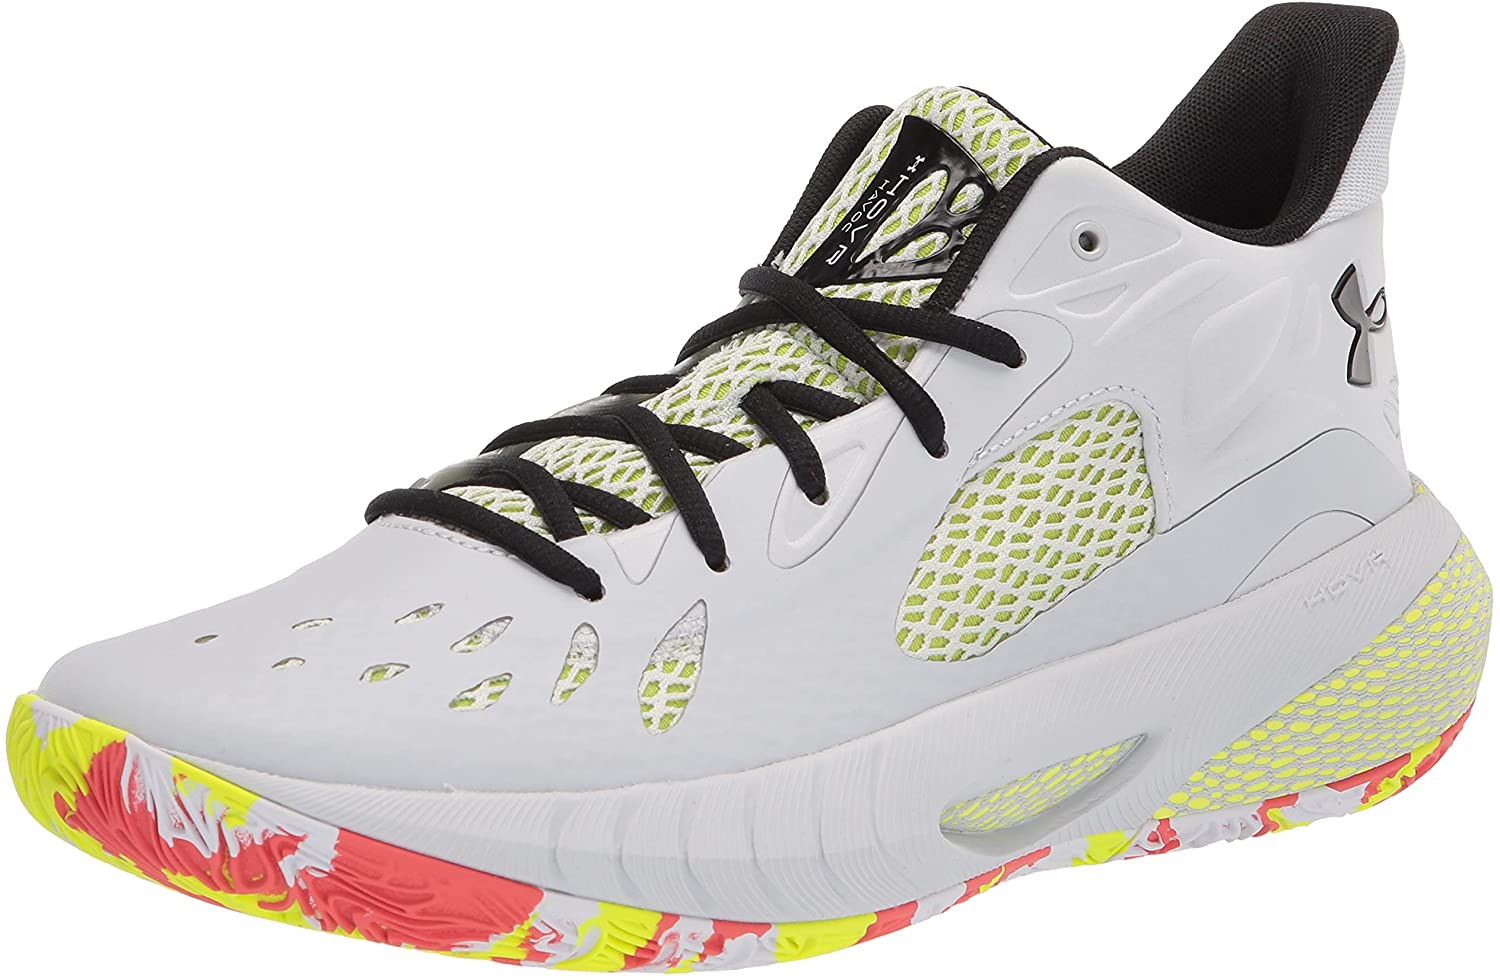 Under Free shipping anywhere in the nation Armour Max 71% OFF Unisex-Adult HOVR Havoc Shoe 3 Basketball